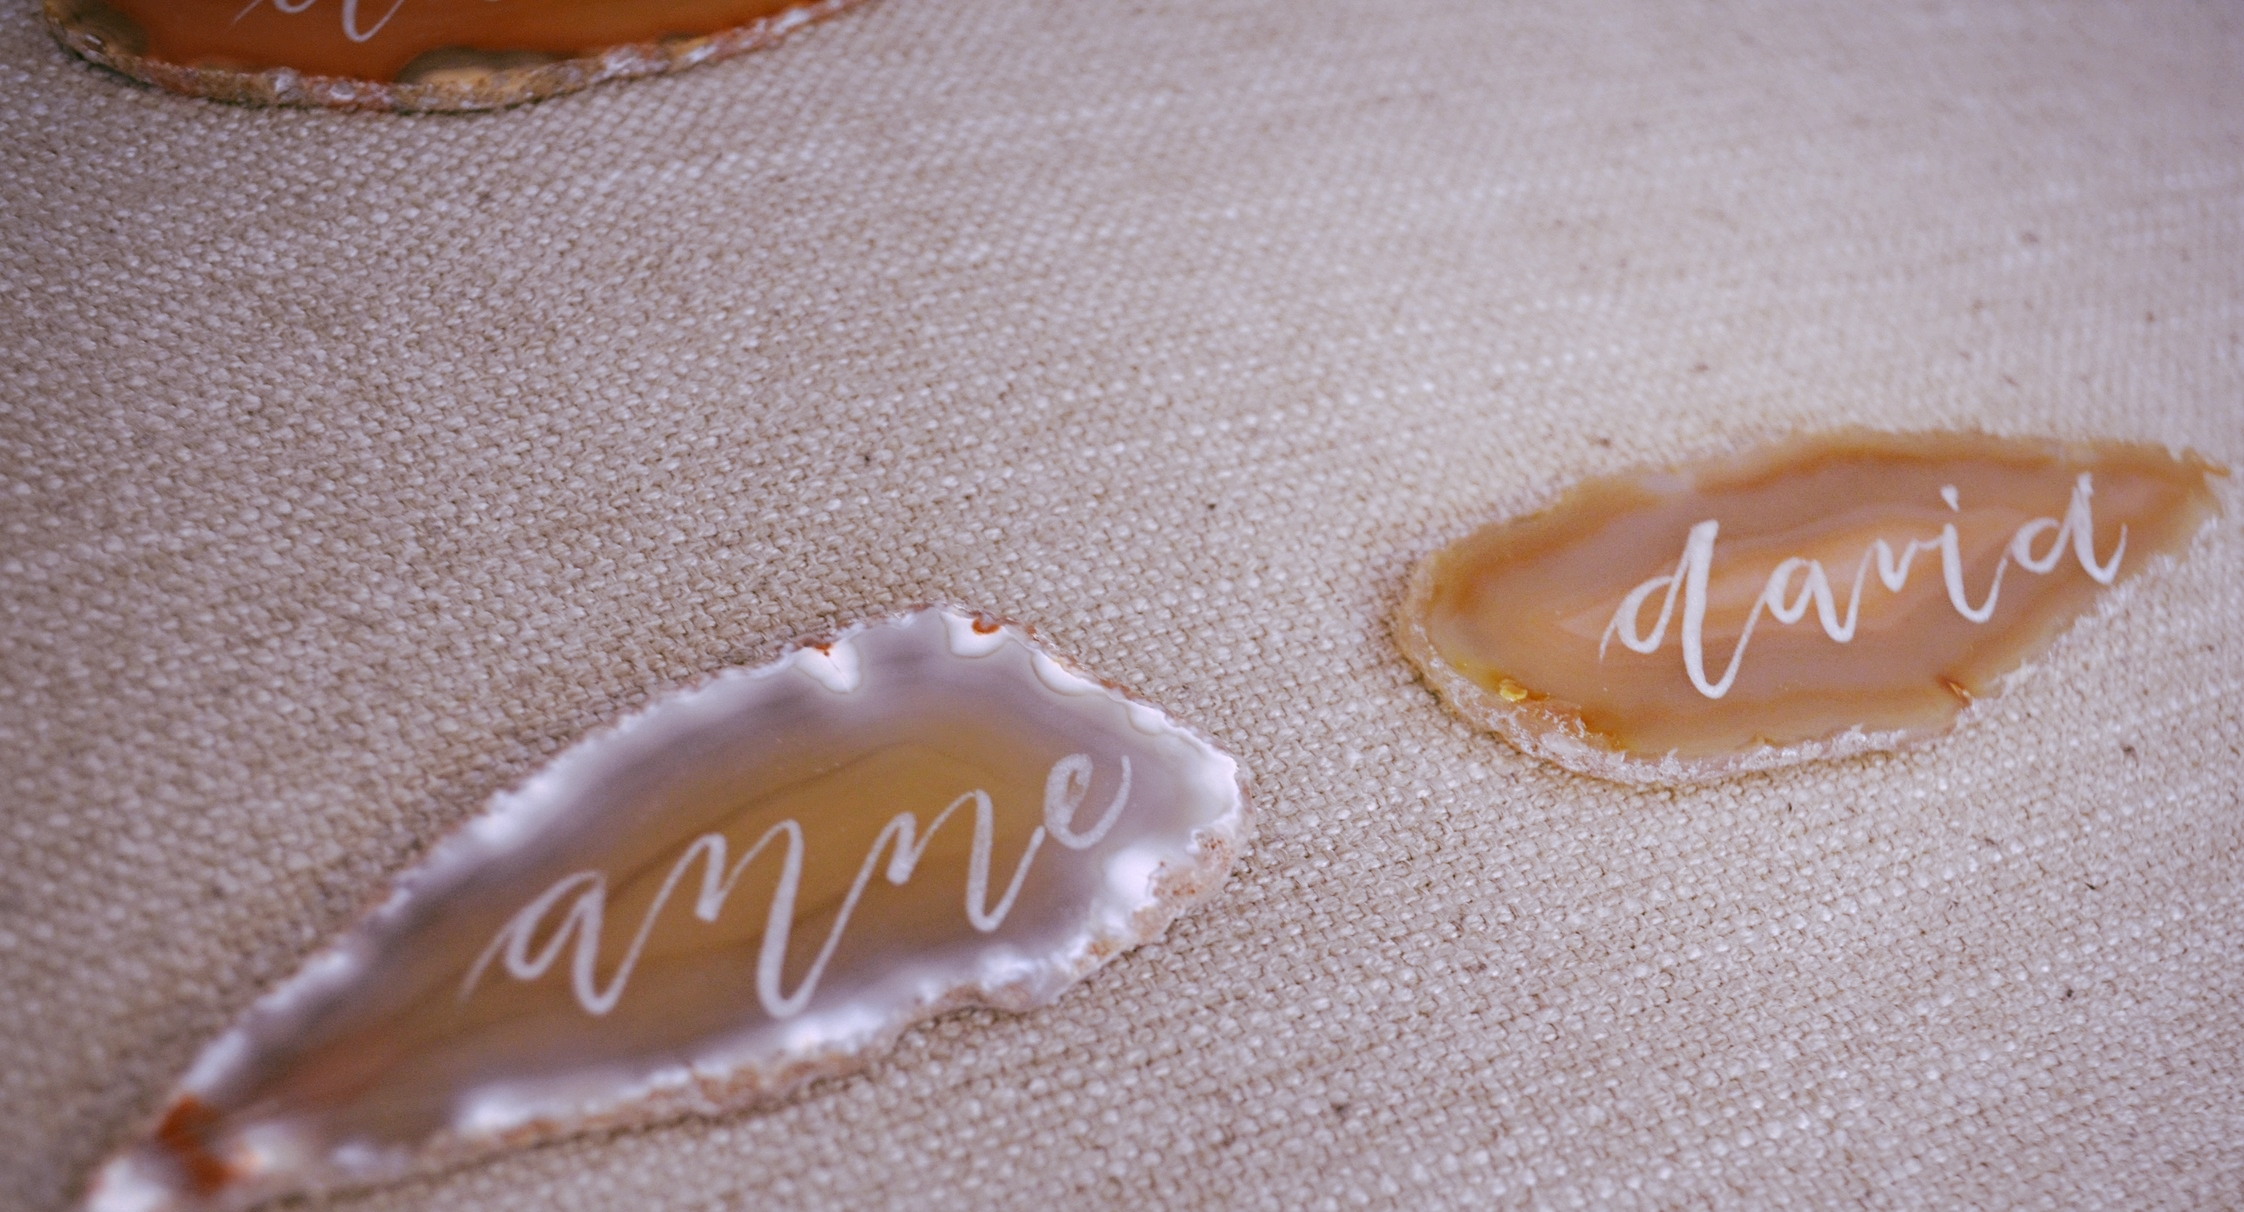 Agate Stone Place Card Calligrapher Houston 18 Aug 2015 3.jpg